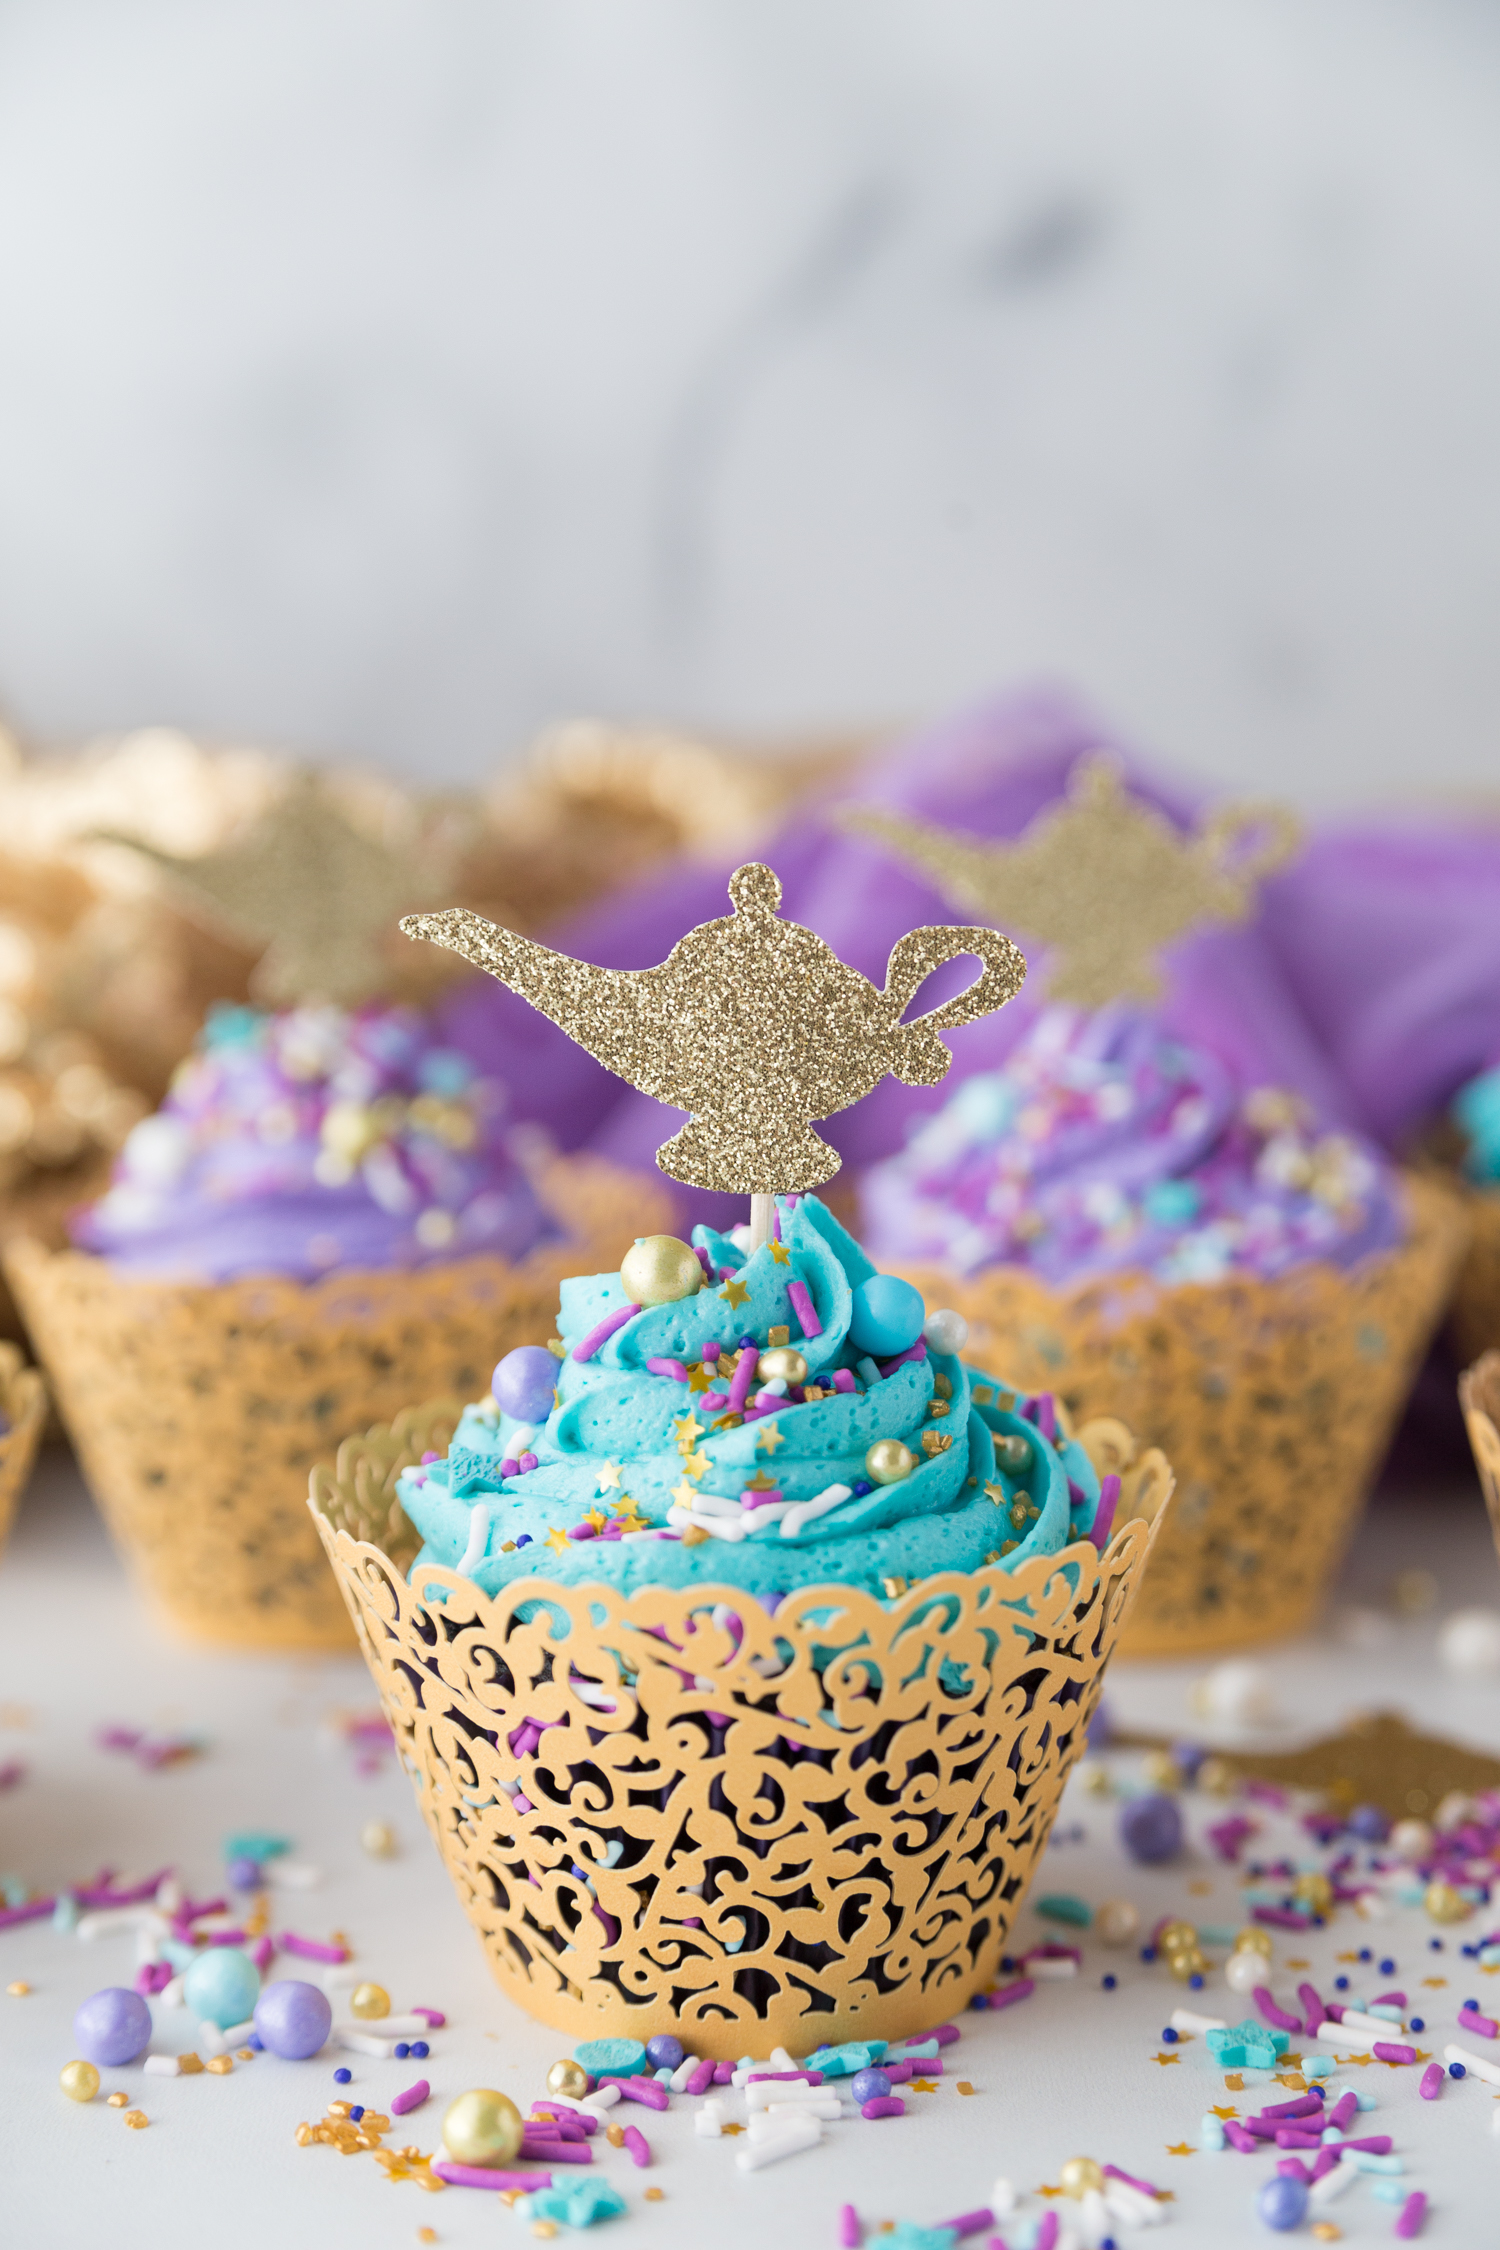 DIY Aladdin Cupcakes: a fun and simple cupcake perfect to celebrate any Princess Jasmine or Aladdin party!